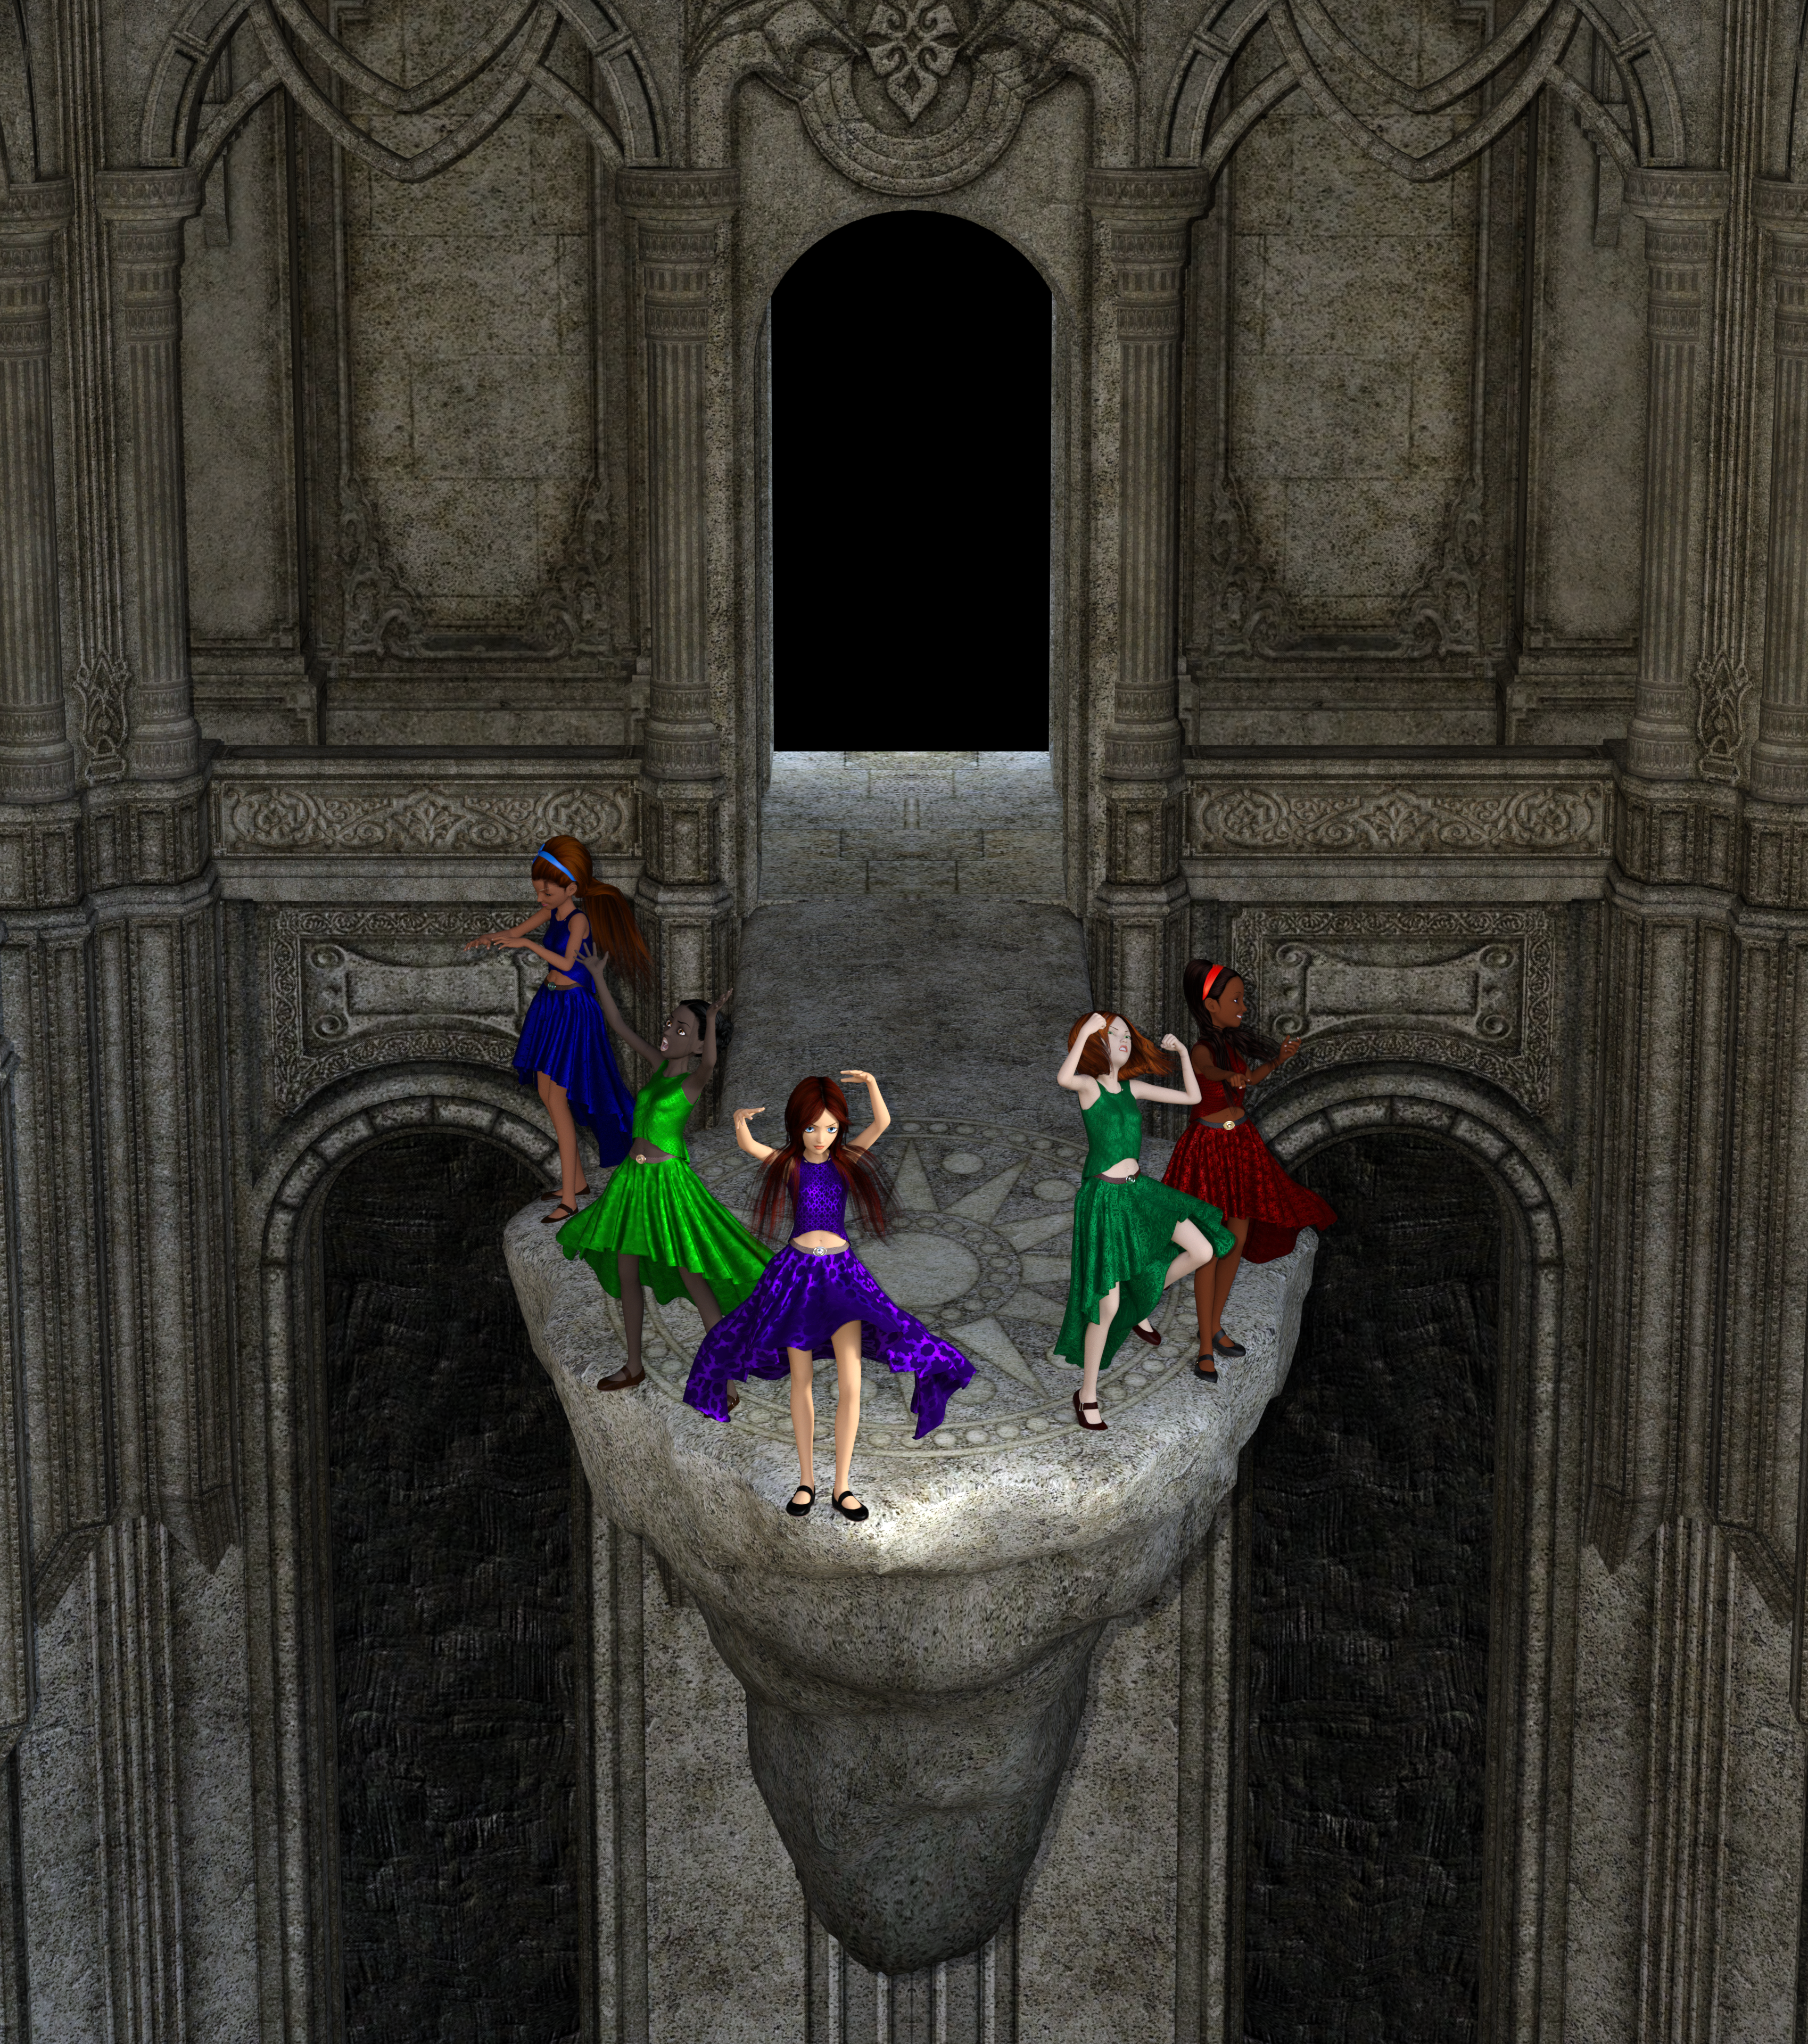 Five women seeking magical powers in an ancient chasm.